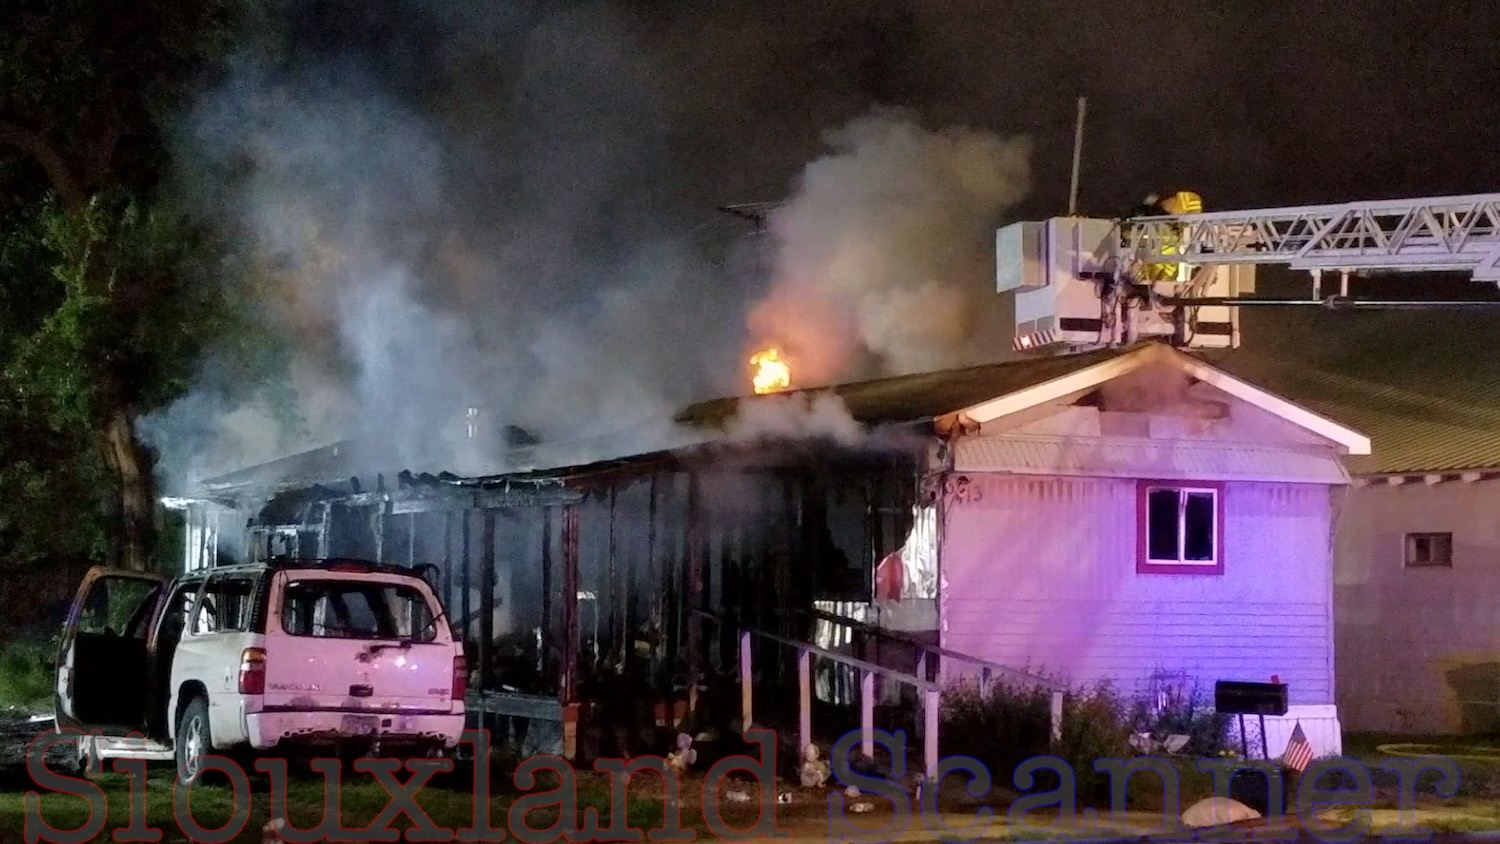 Fire destroys mobile home and suv in Hornick Iowa